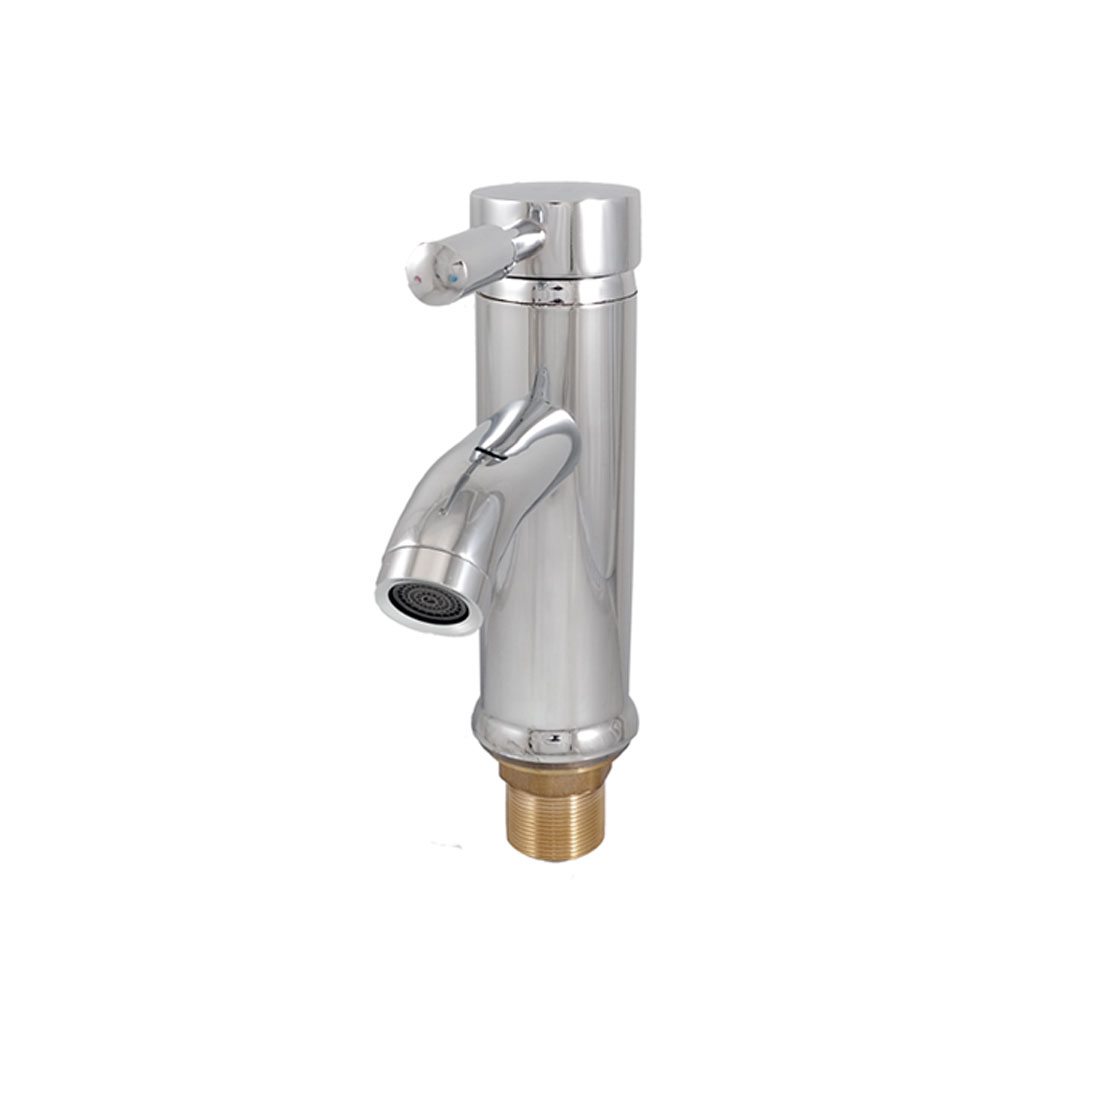 Bathroom 31mm Male Thread Dual Holes Hot Cold Water Filter Faucet Tap w 2 Hoses